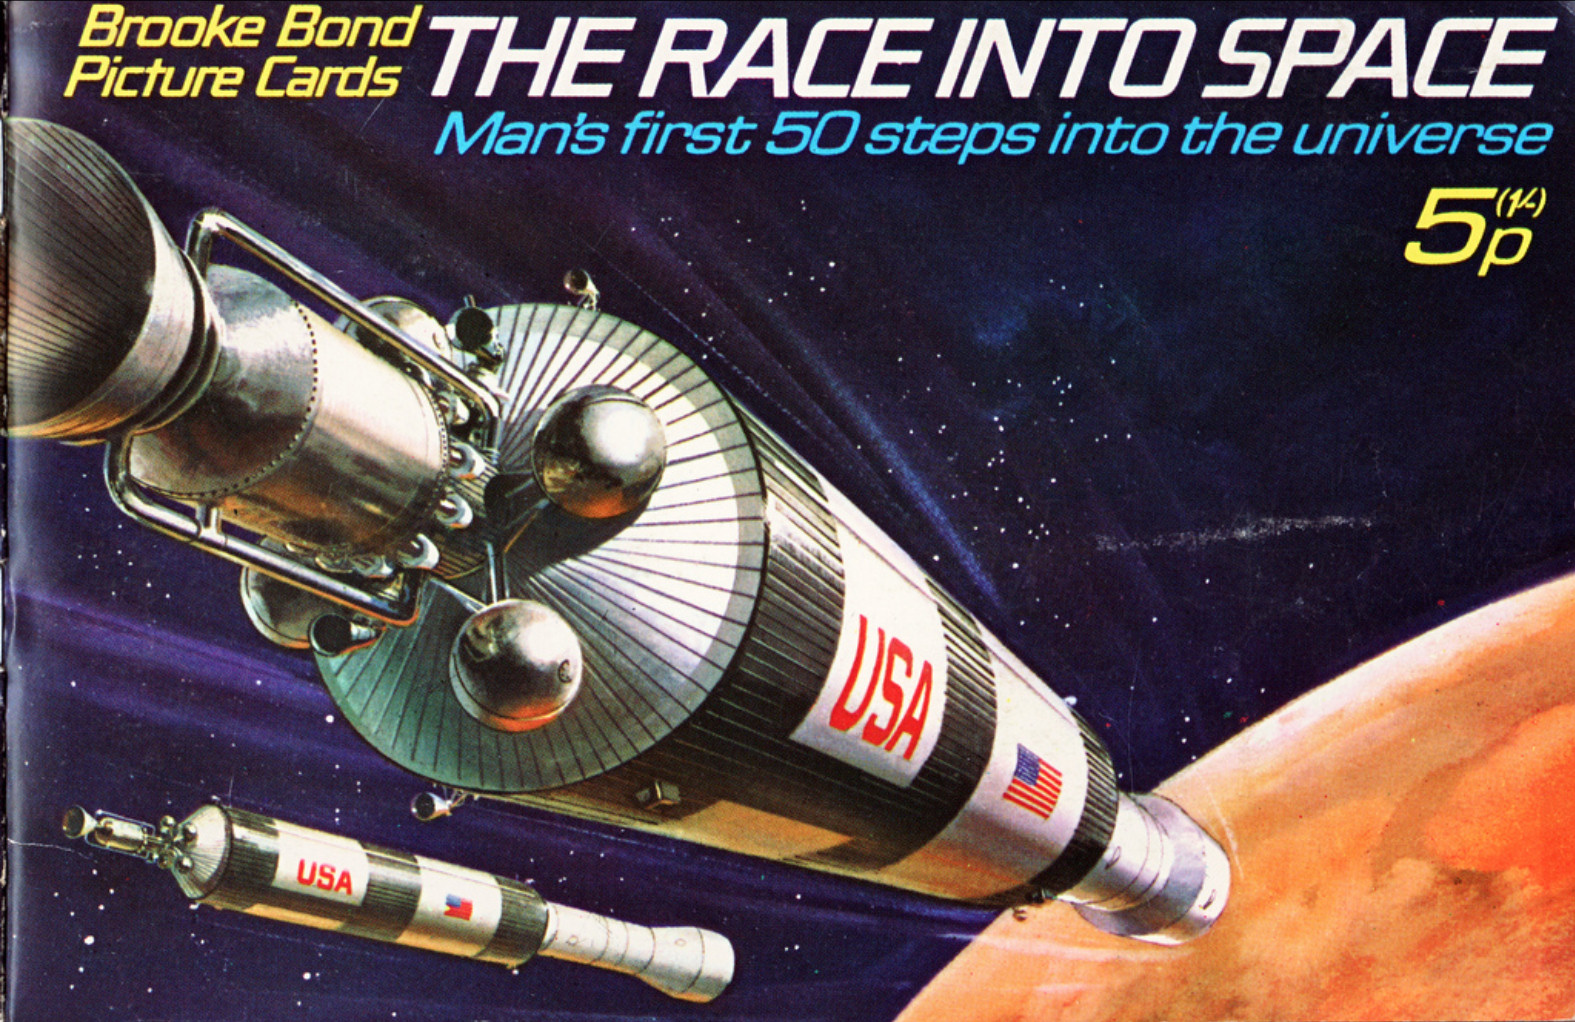 1971-Brooke-Bond-Race-Into-Space-Cover